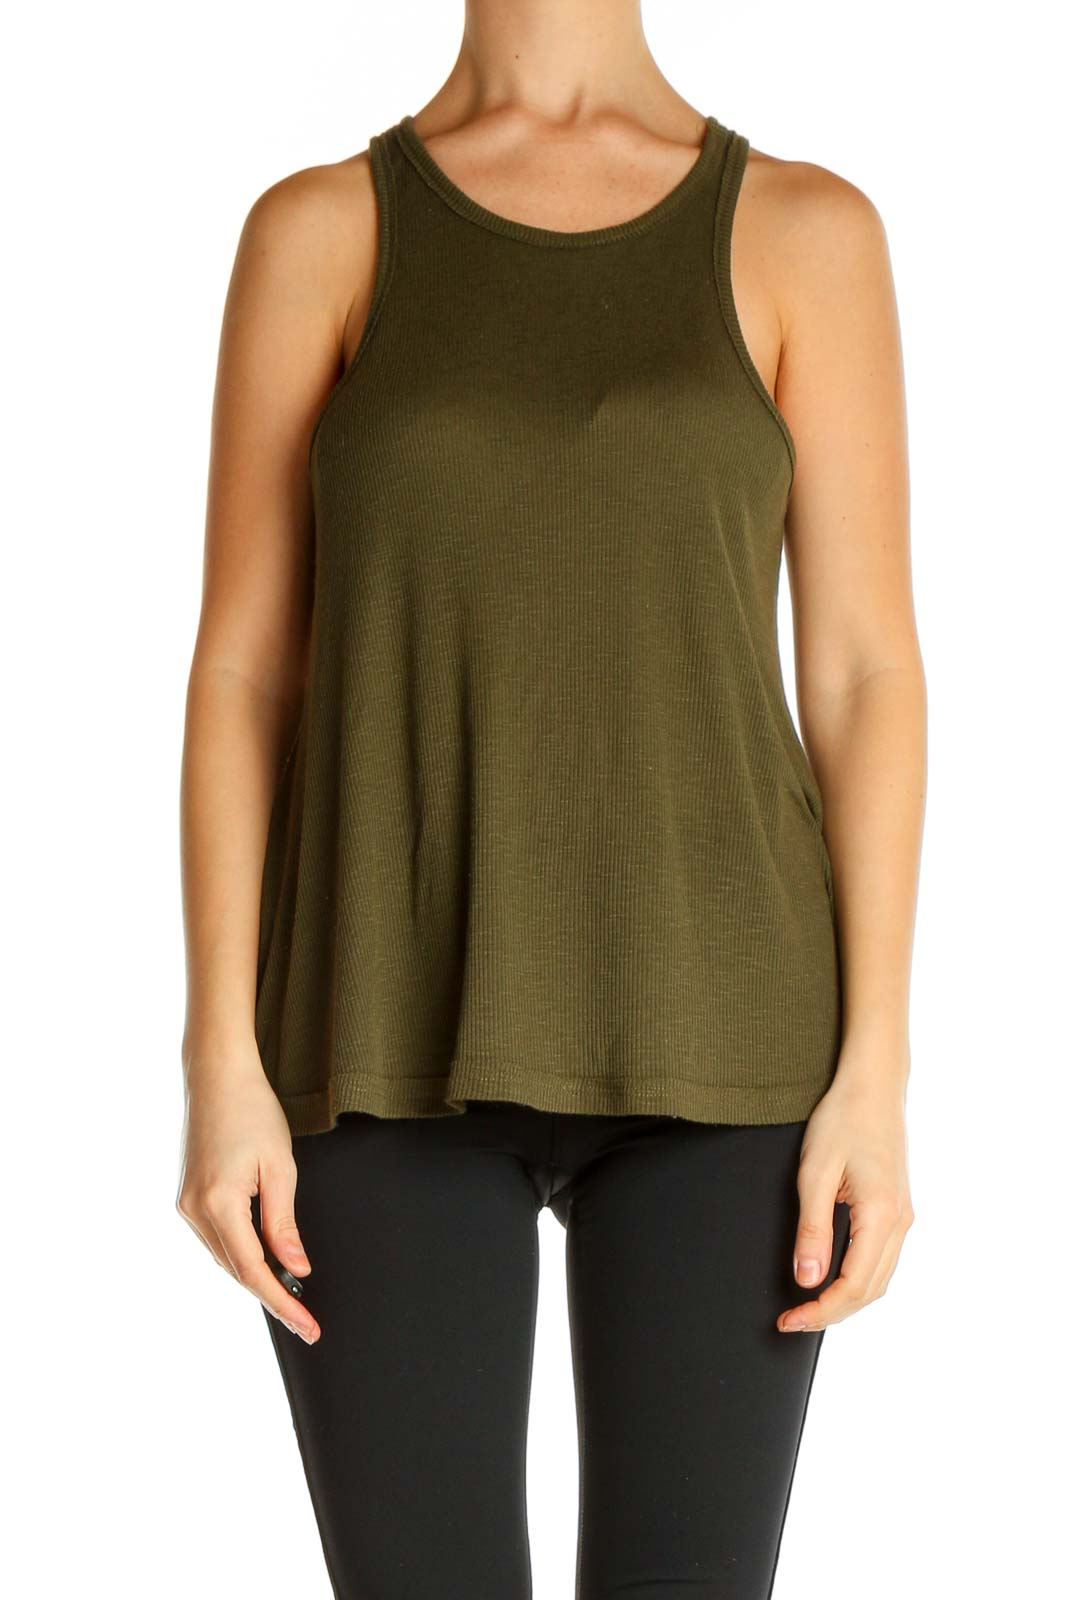 Green Solid All Day Wear Tank Top Front